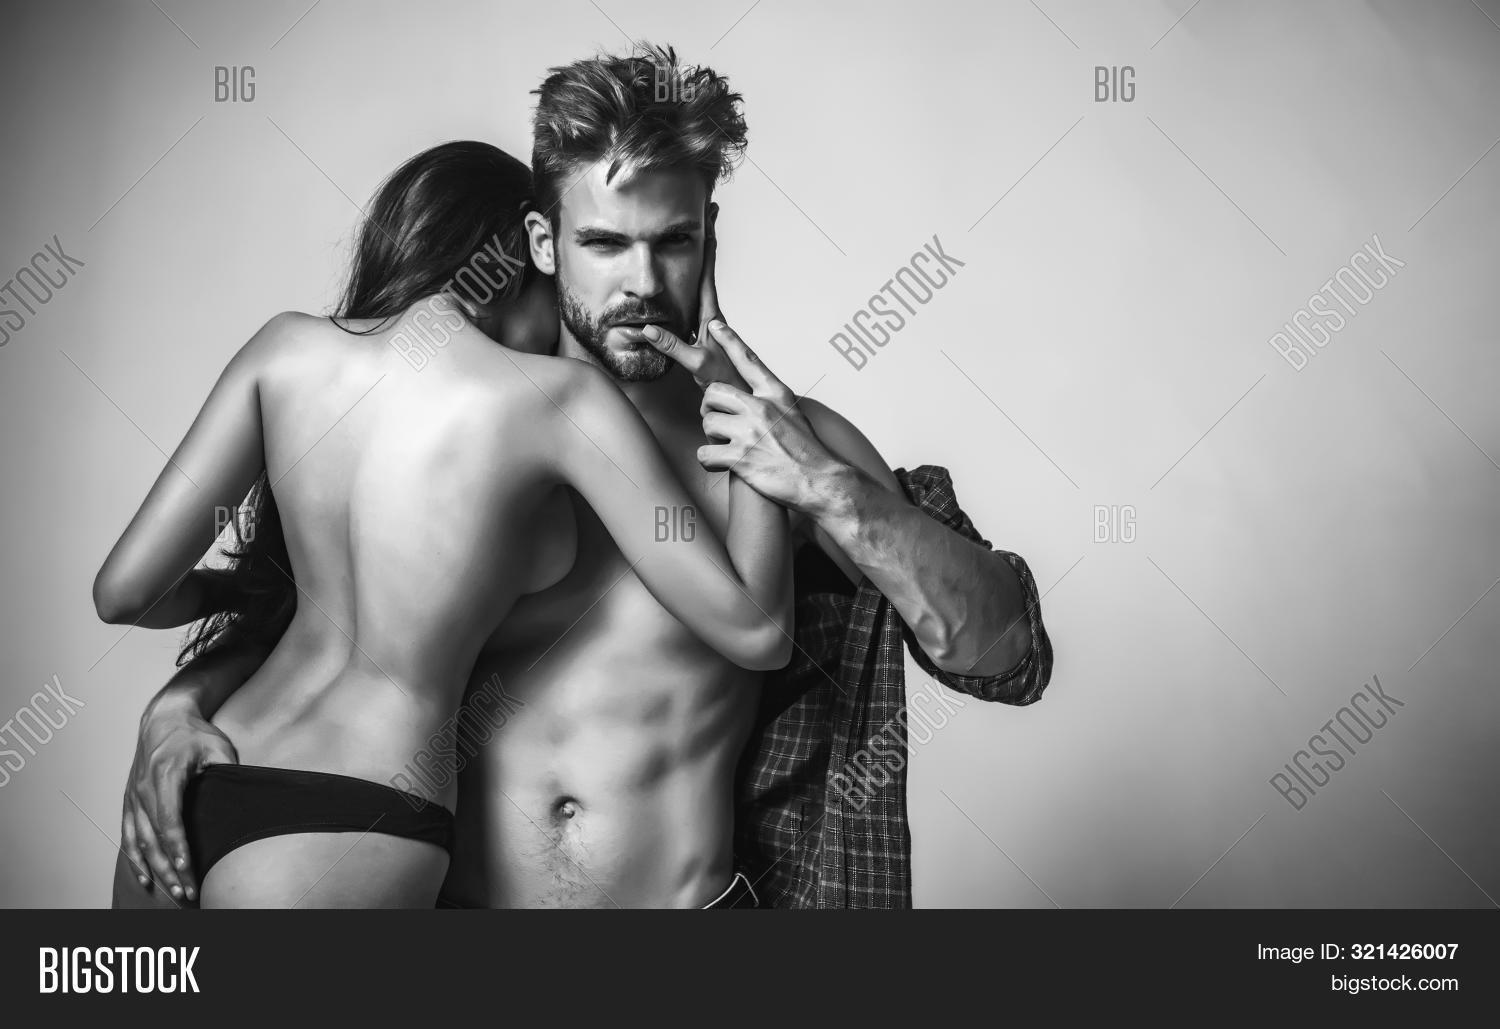 Dominant,Erotica,Having,Intimate,Love,Passion,Sensual,Strip,Valentine,Valentines,adult,body,couple,dates,dating,day,erection,escort,feelings,flirt,flirting,foreplay,heart,horny,hot,hug,kiss,kissing,lover,man,mistress,relationship,romantic,seduce,sex,sexual,sexy,touch